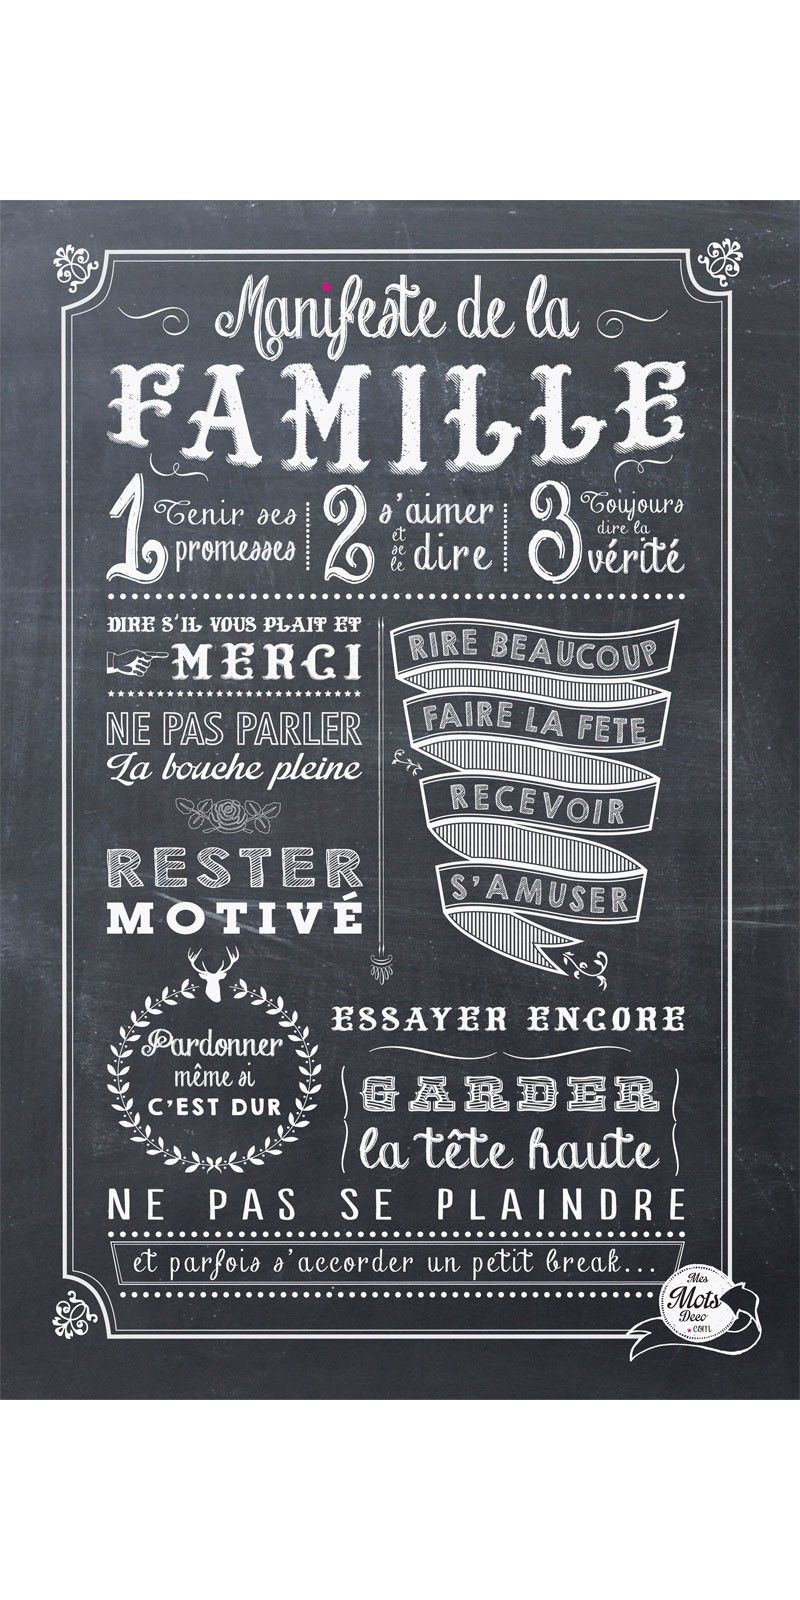 le manifeste de la famille affiche encadrer citations pinterest la famille familles. Black Bedroom Furniture Sets. Home Design Ideas